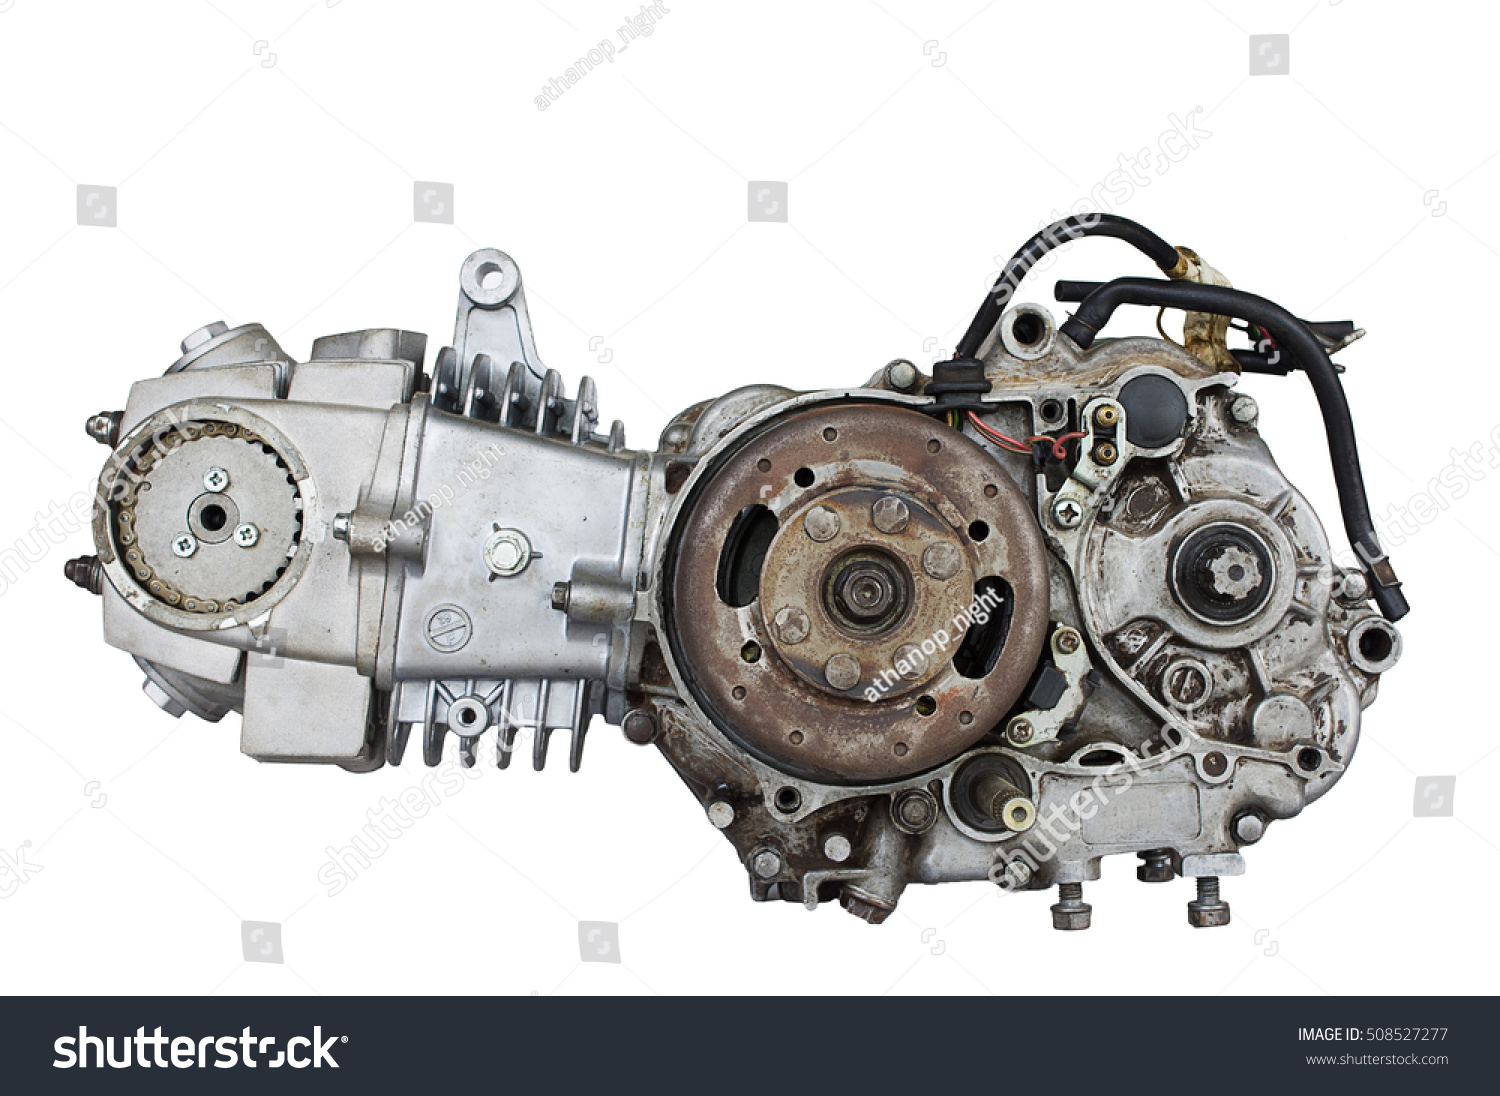 Old Motor Engine Gear Motorcycles Hard Stock Photo (Royalty Free ...